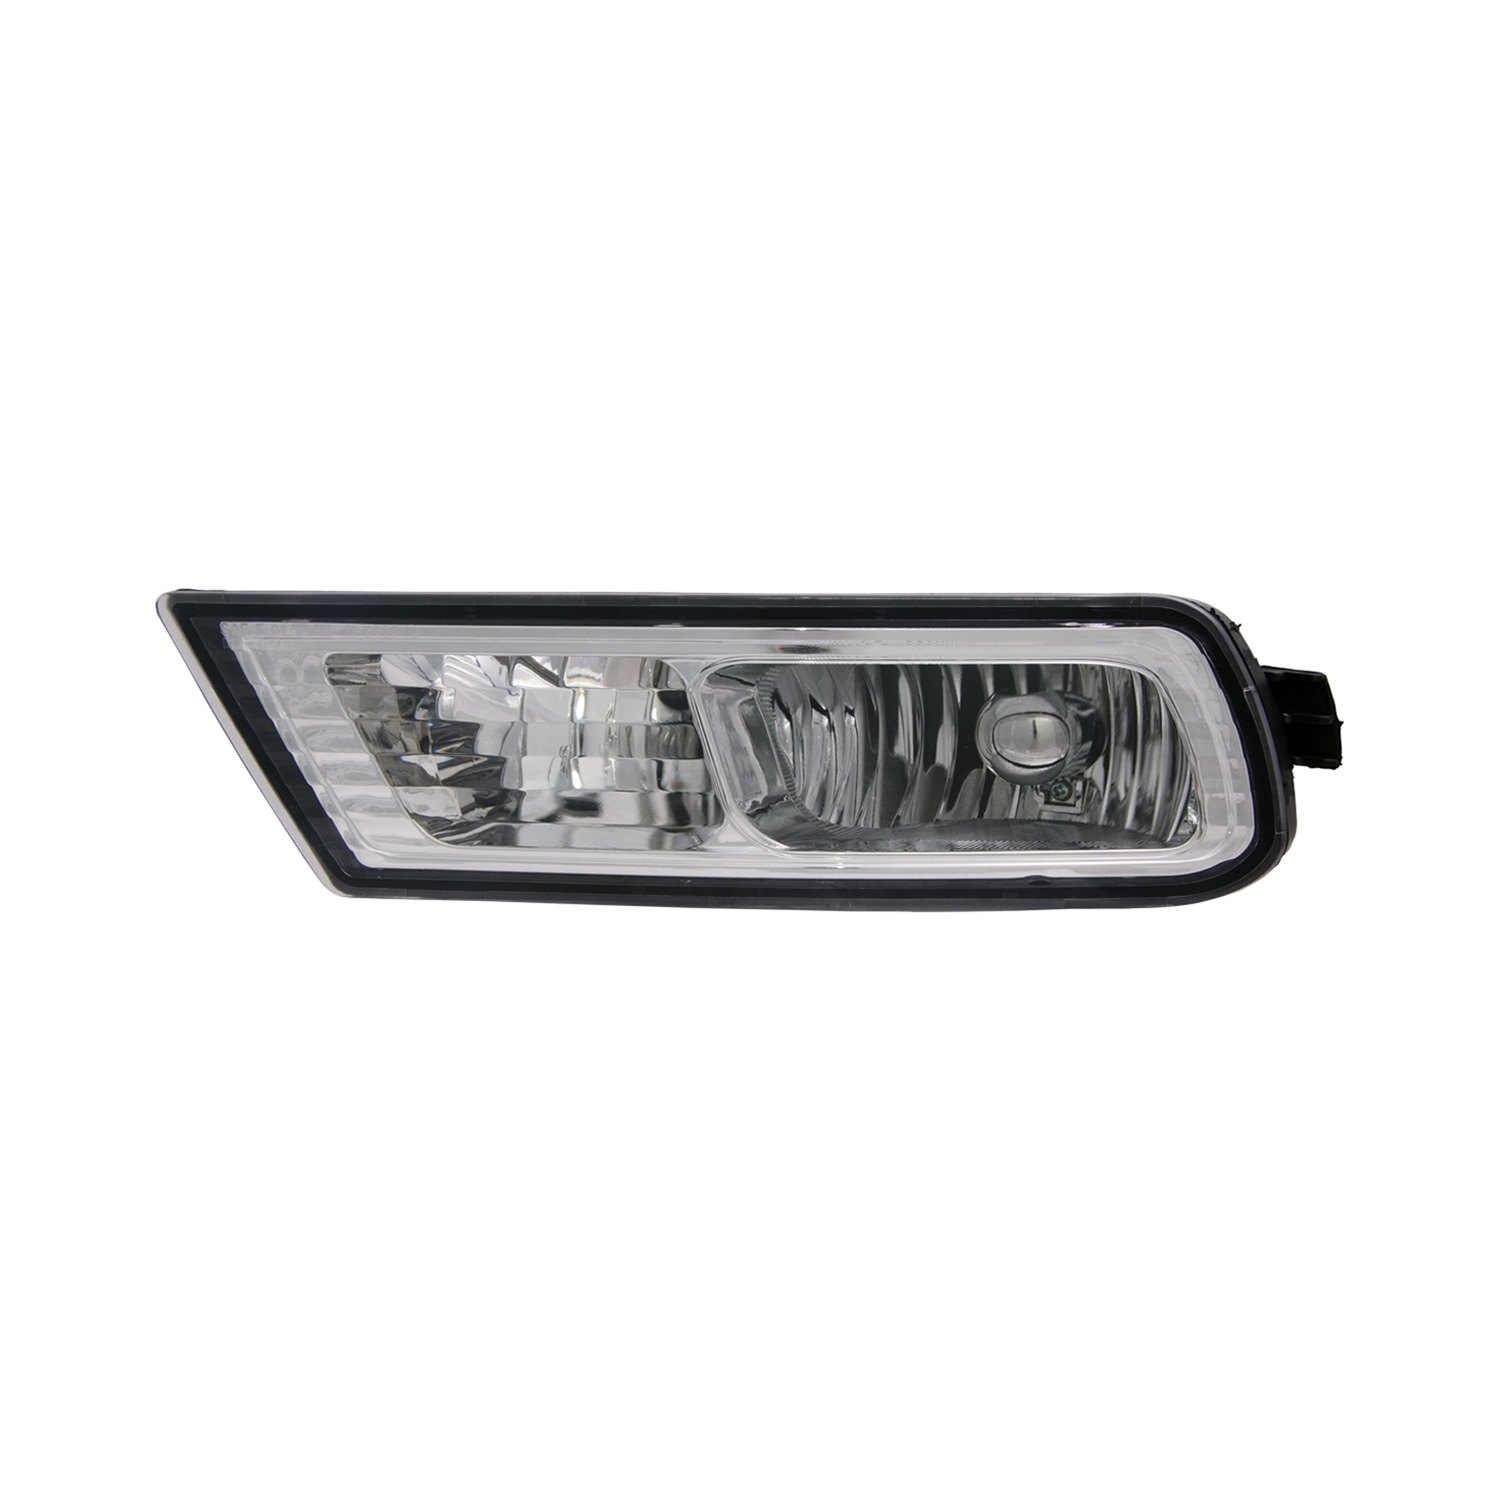 For Acura MDX 2010-2013 Replace AC2594101 Driver Side